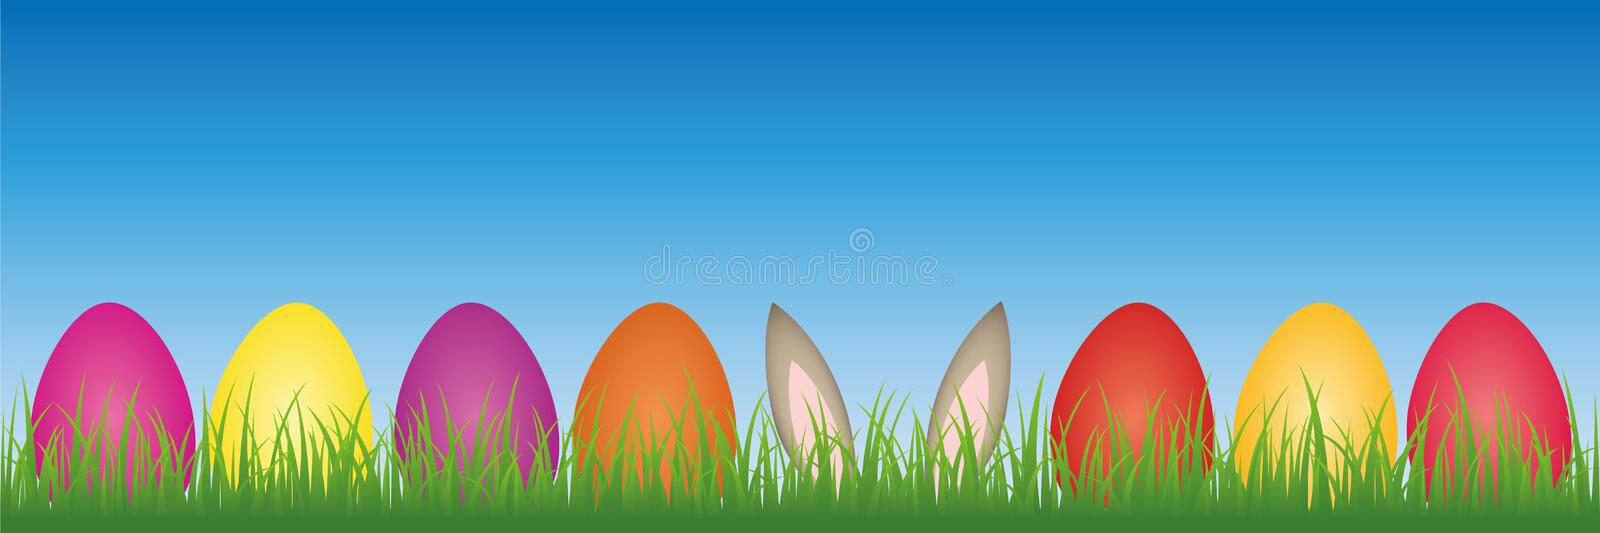 Hare ears in the meadow between colorful Easter eggs royalty free illustration